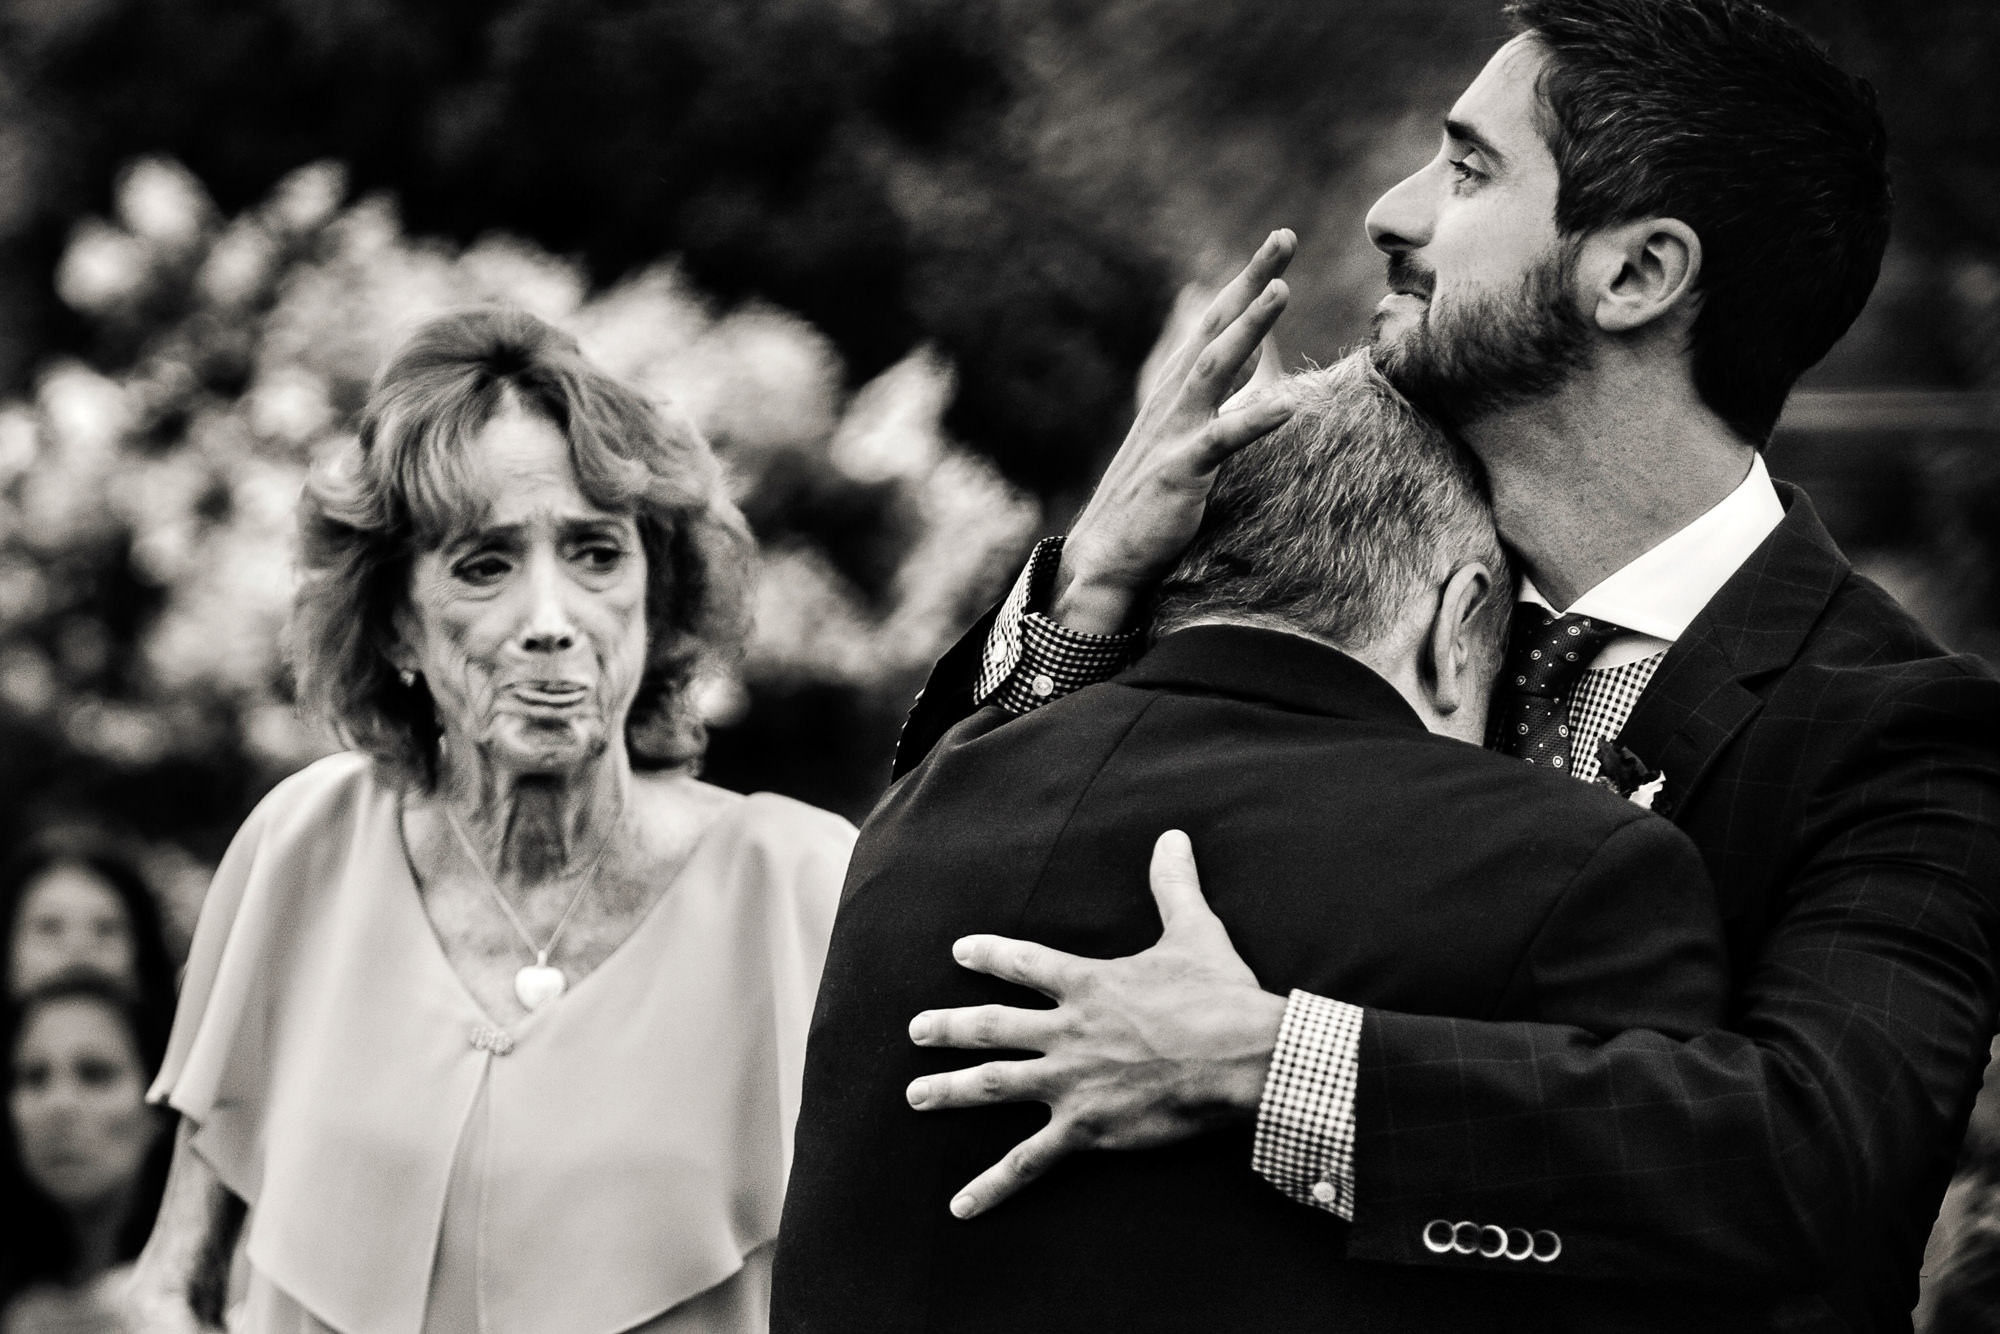 Father cries on grooms shoulder while mom looks on - photo by Jag Studios